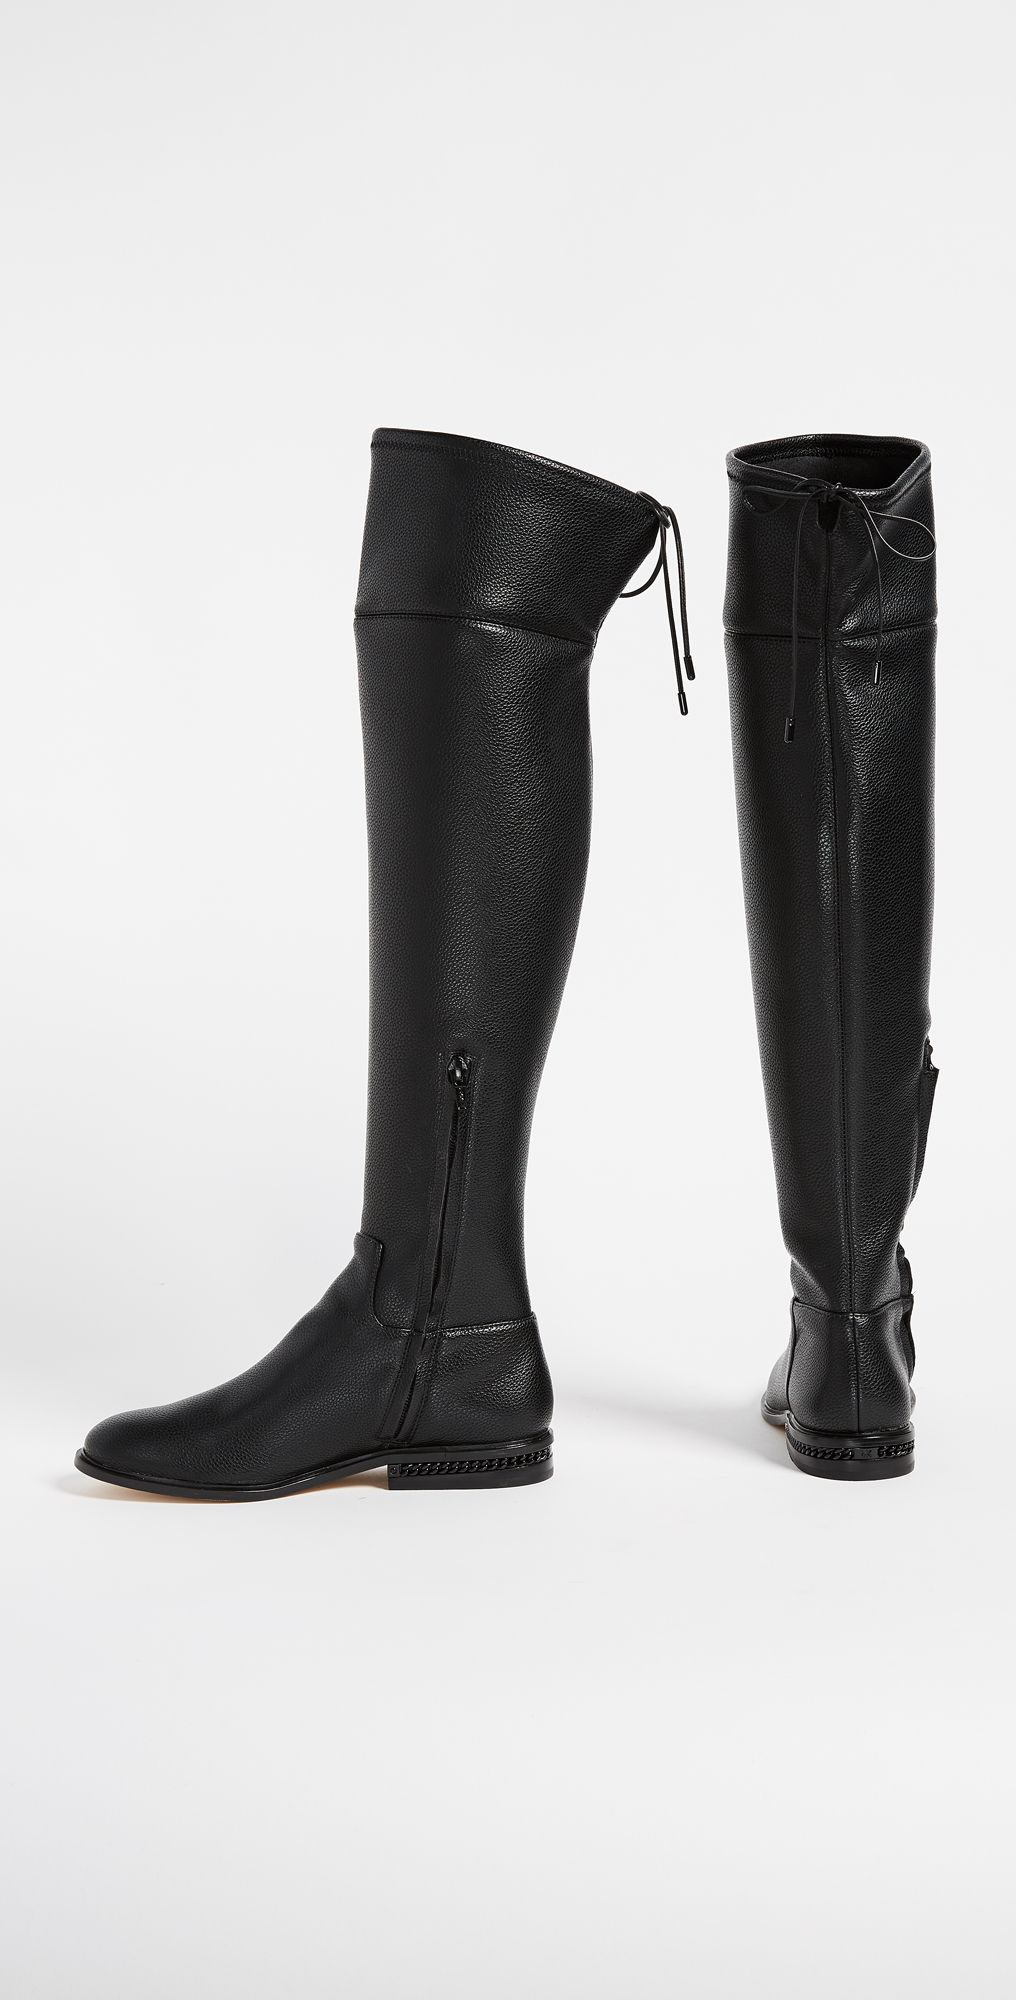 3447f8ca839 MICHAEL Michael Kors Jamie Flat Over the Knee Boots